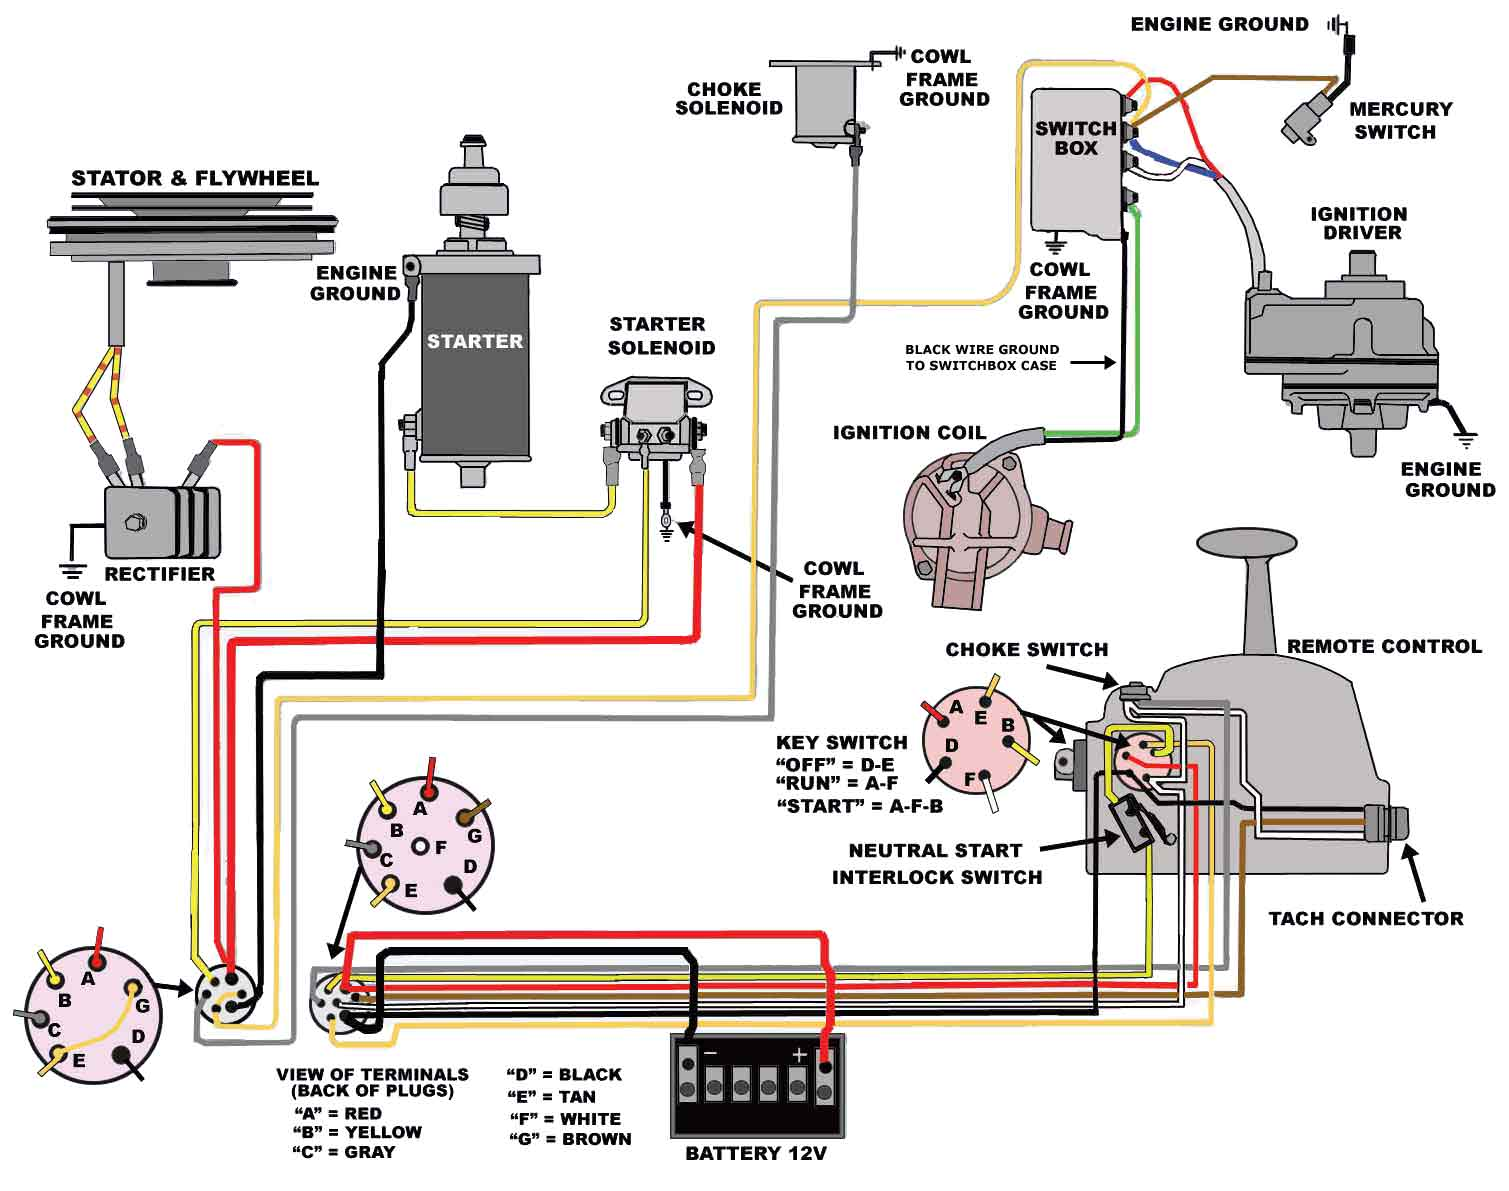 engine wiring diagram yamaha 40 hp outboard smart wiring diagrams u2022 rh emgsolutions co 1989 yamaha 40 hp outboard wiring diagram yamaha 40 hp 2 stroke outboard wiring diagram